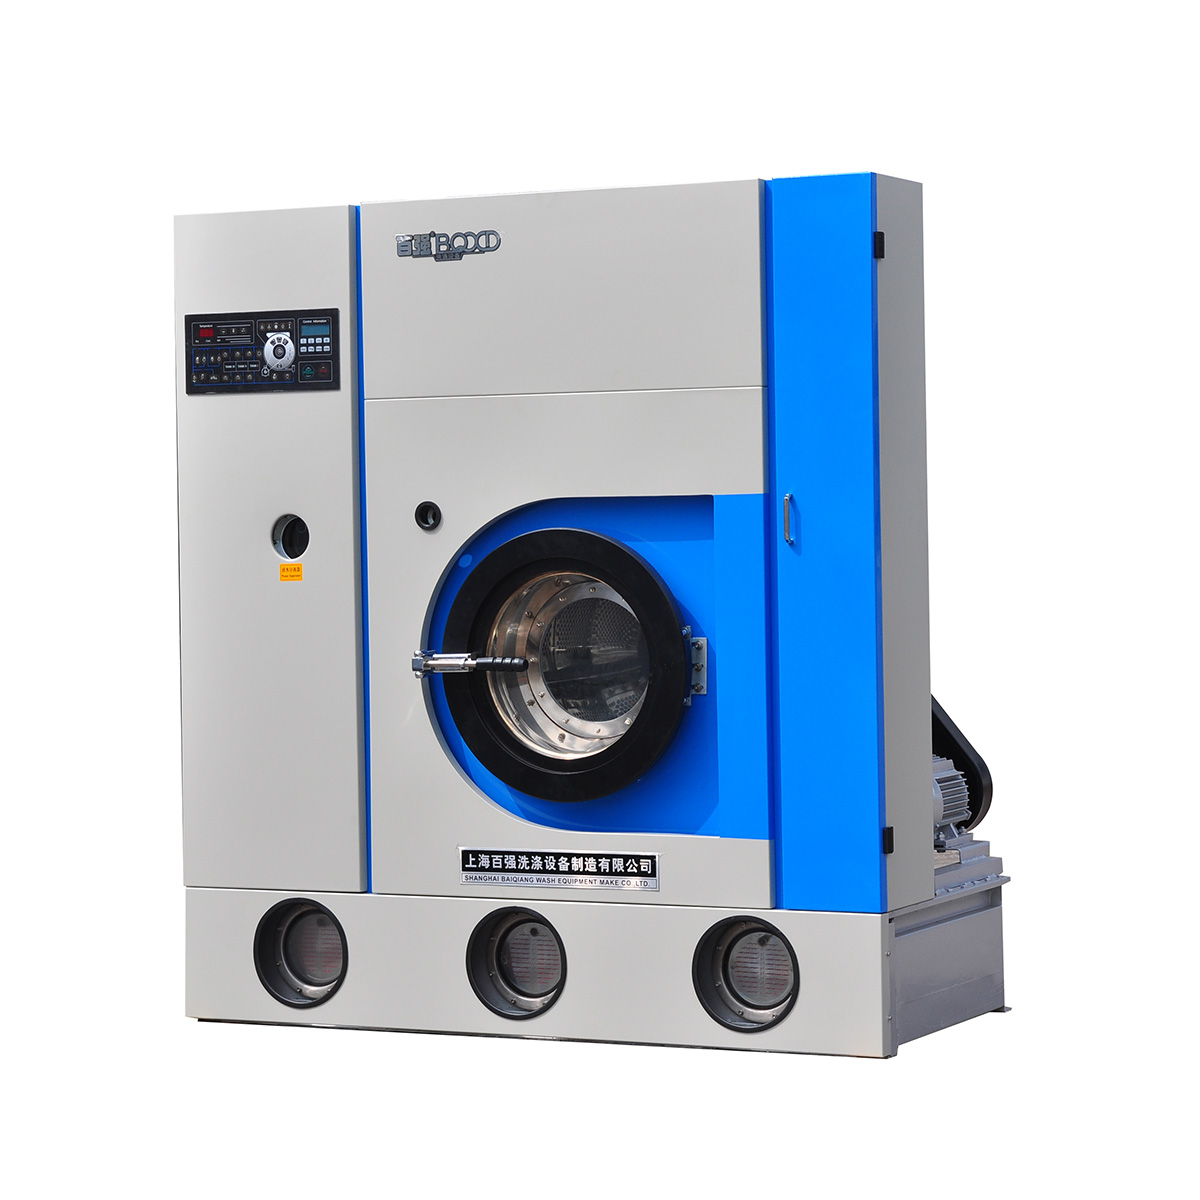 P series closed dry-cleaning machines